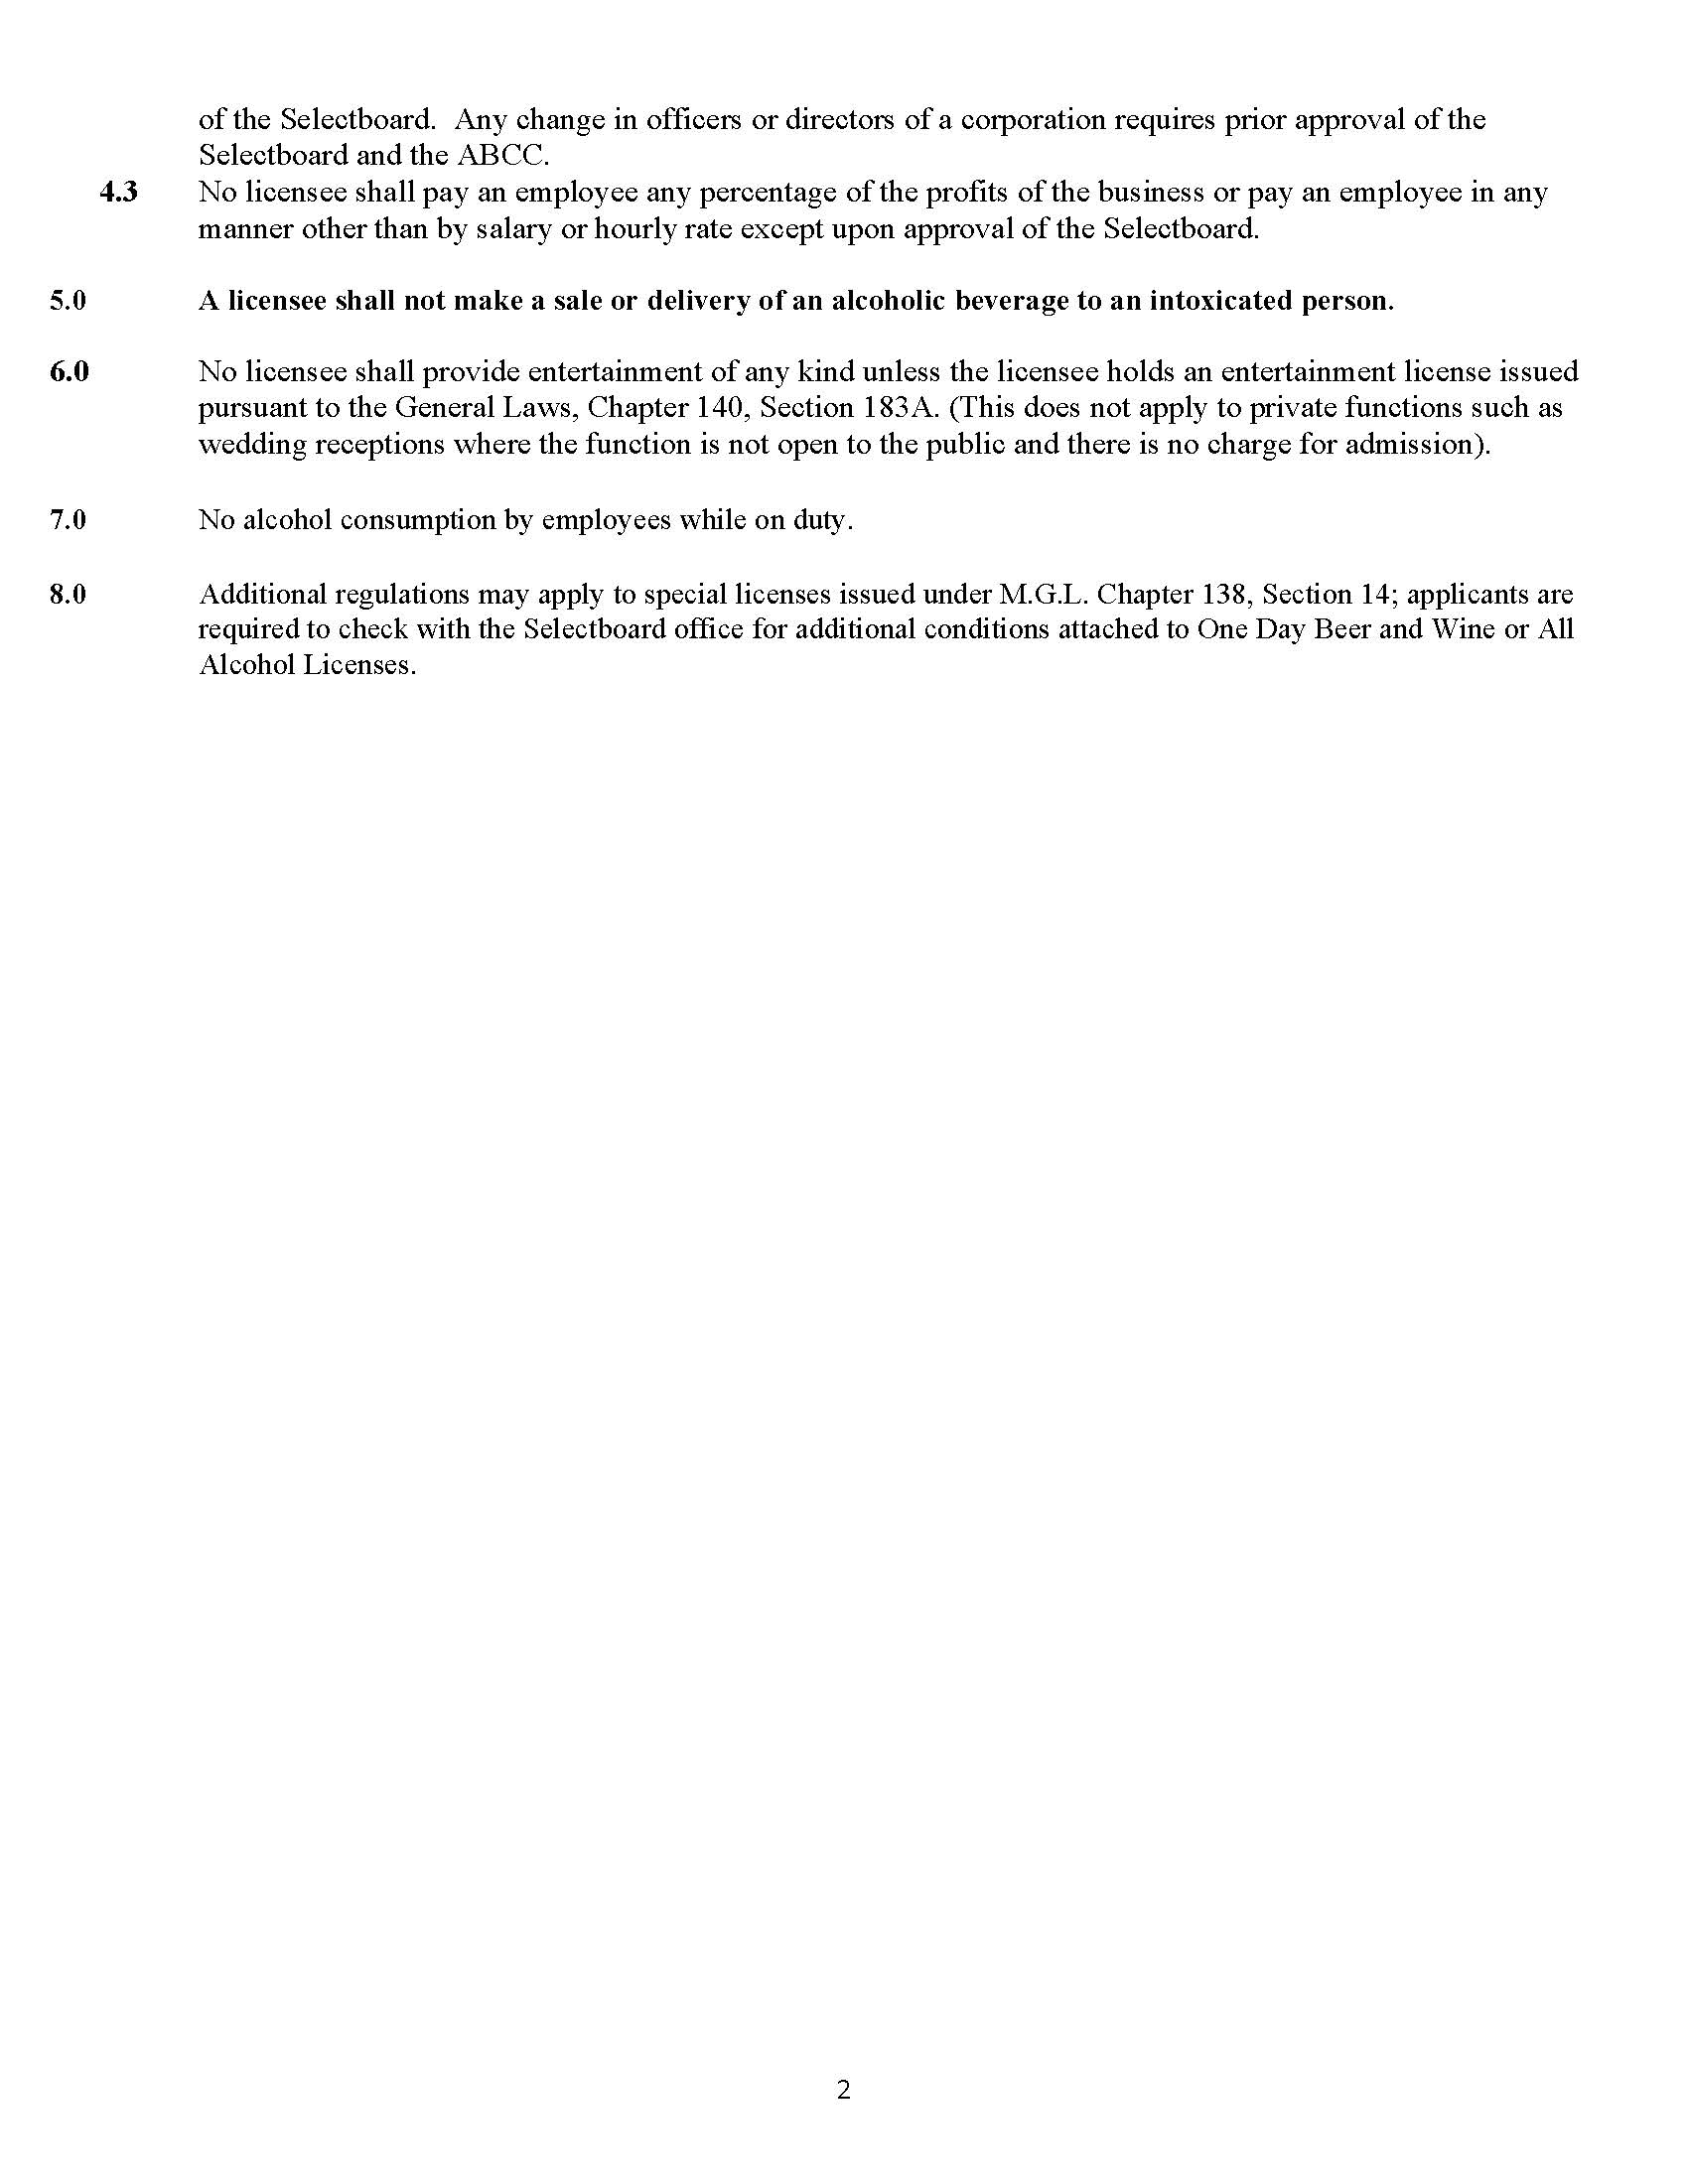 Liquor License Regulations (PDF)_Page_2